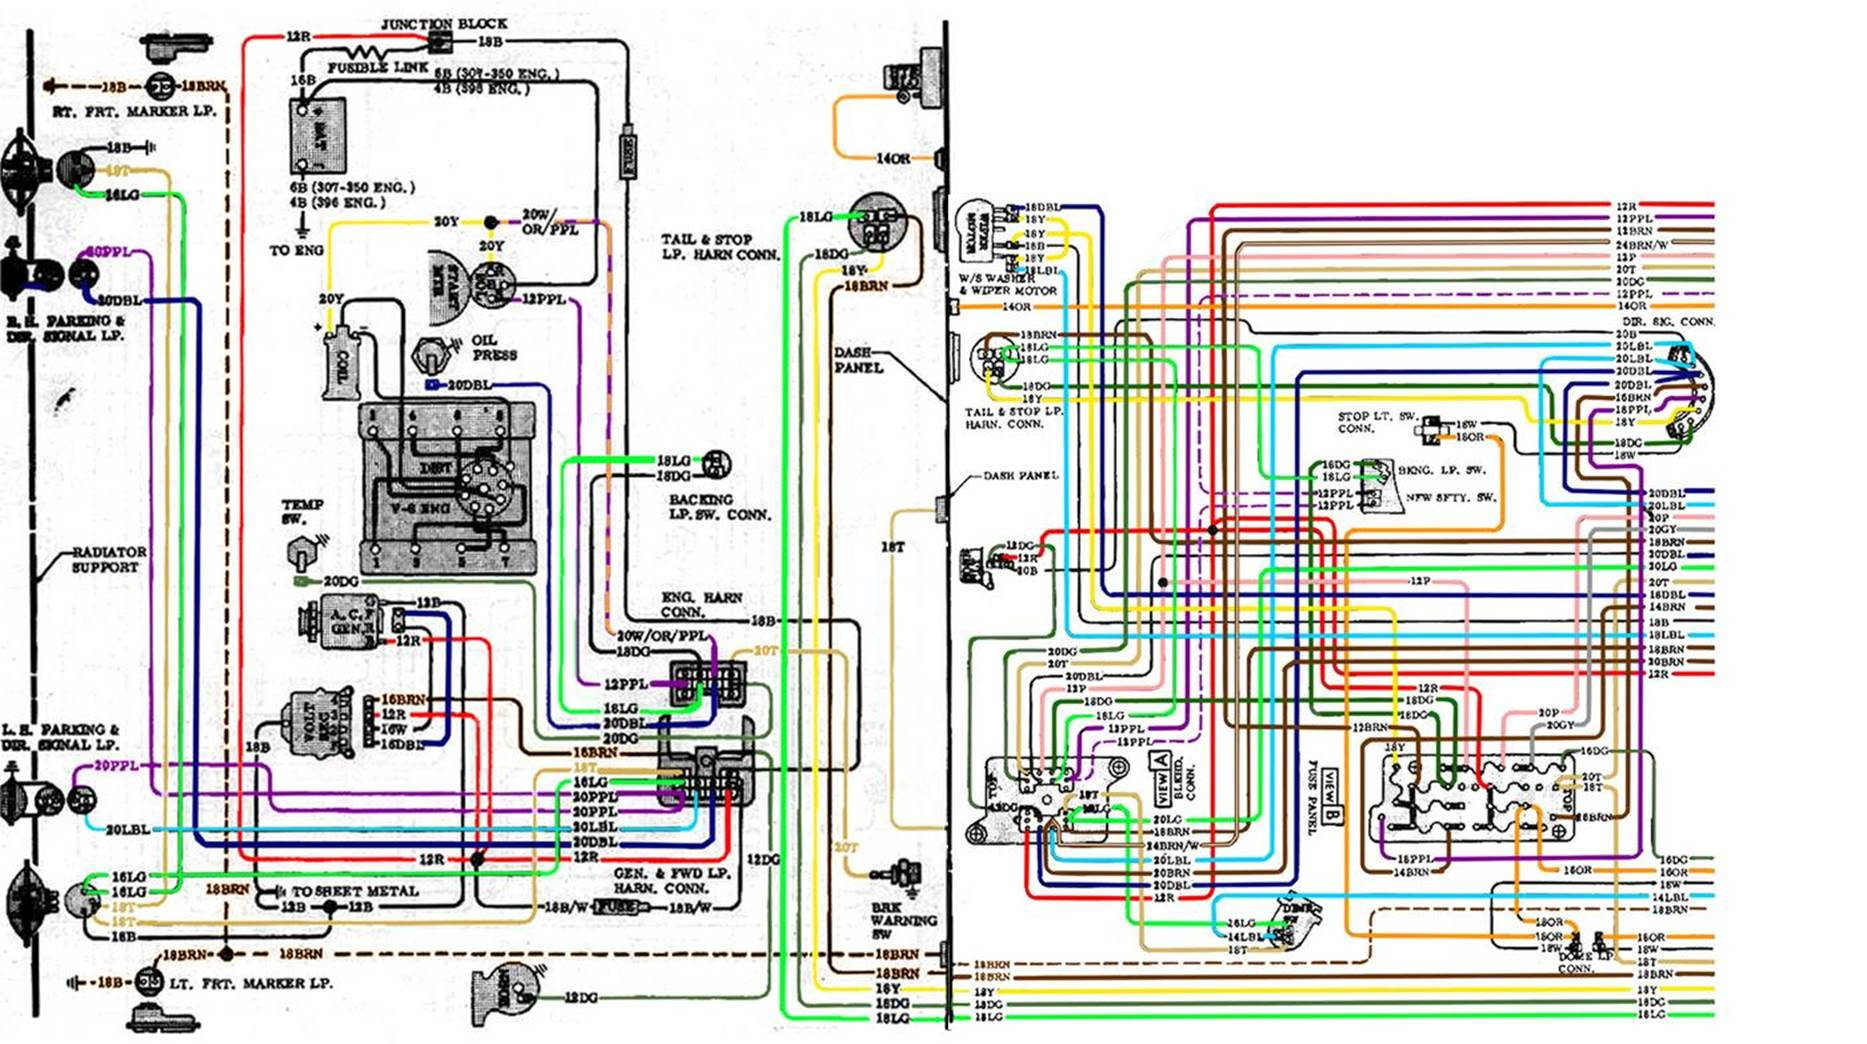 image002 1971 chevelle wiring diagram 1971 chevelle engine bay wiring 65 chevelle wiring harness at aneh.co